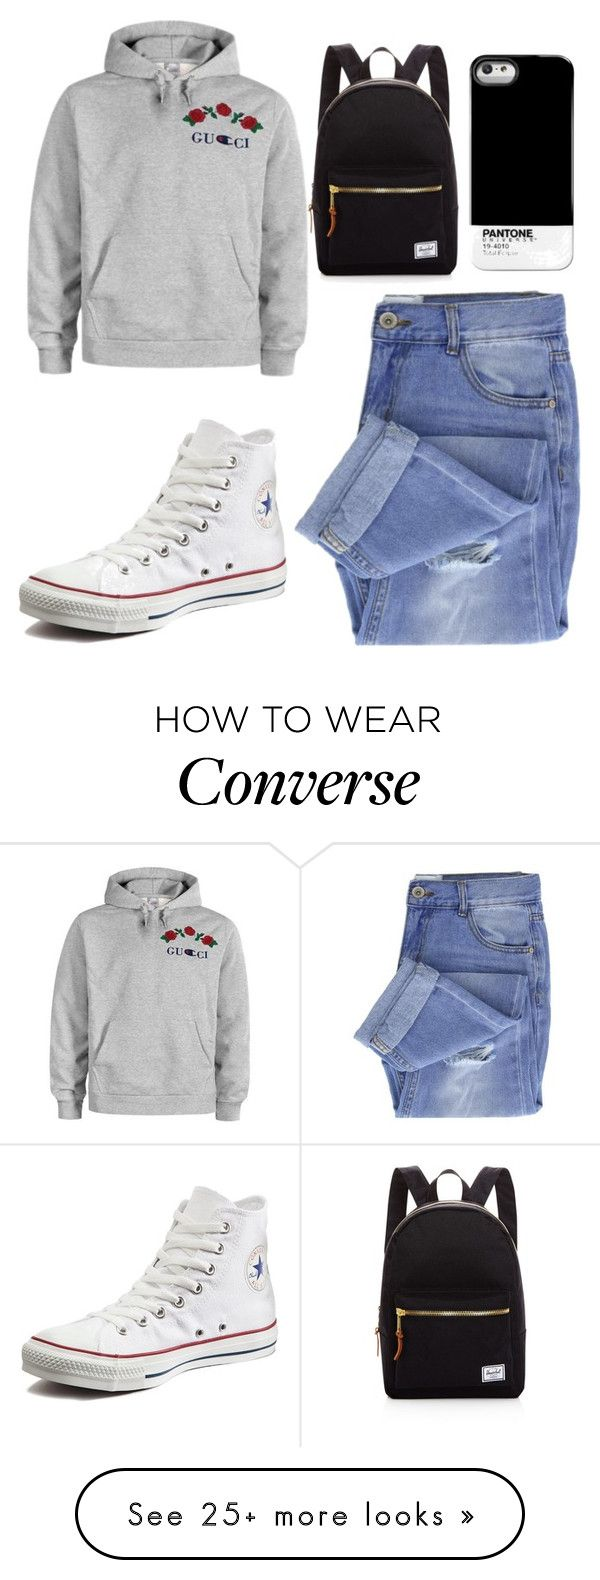 """""""Untitled #475"""" by arcarmona-ac on Polyvore featuring Taya, Gucci, Converse, Herschel Supply Co. and Pantone Universe"""